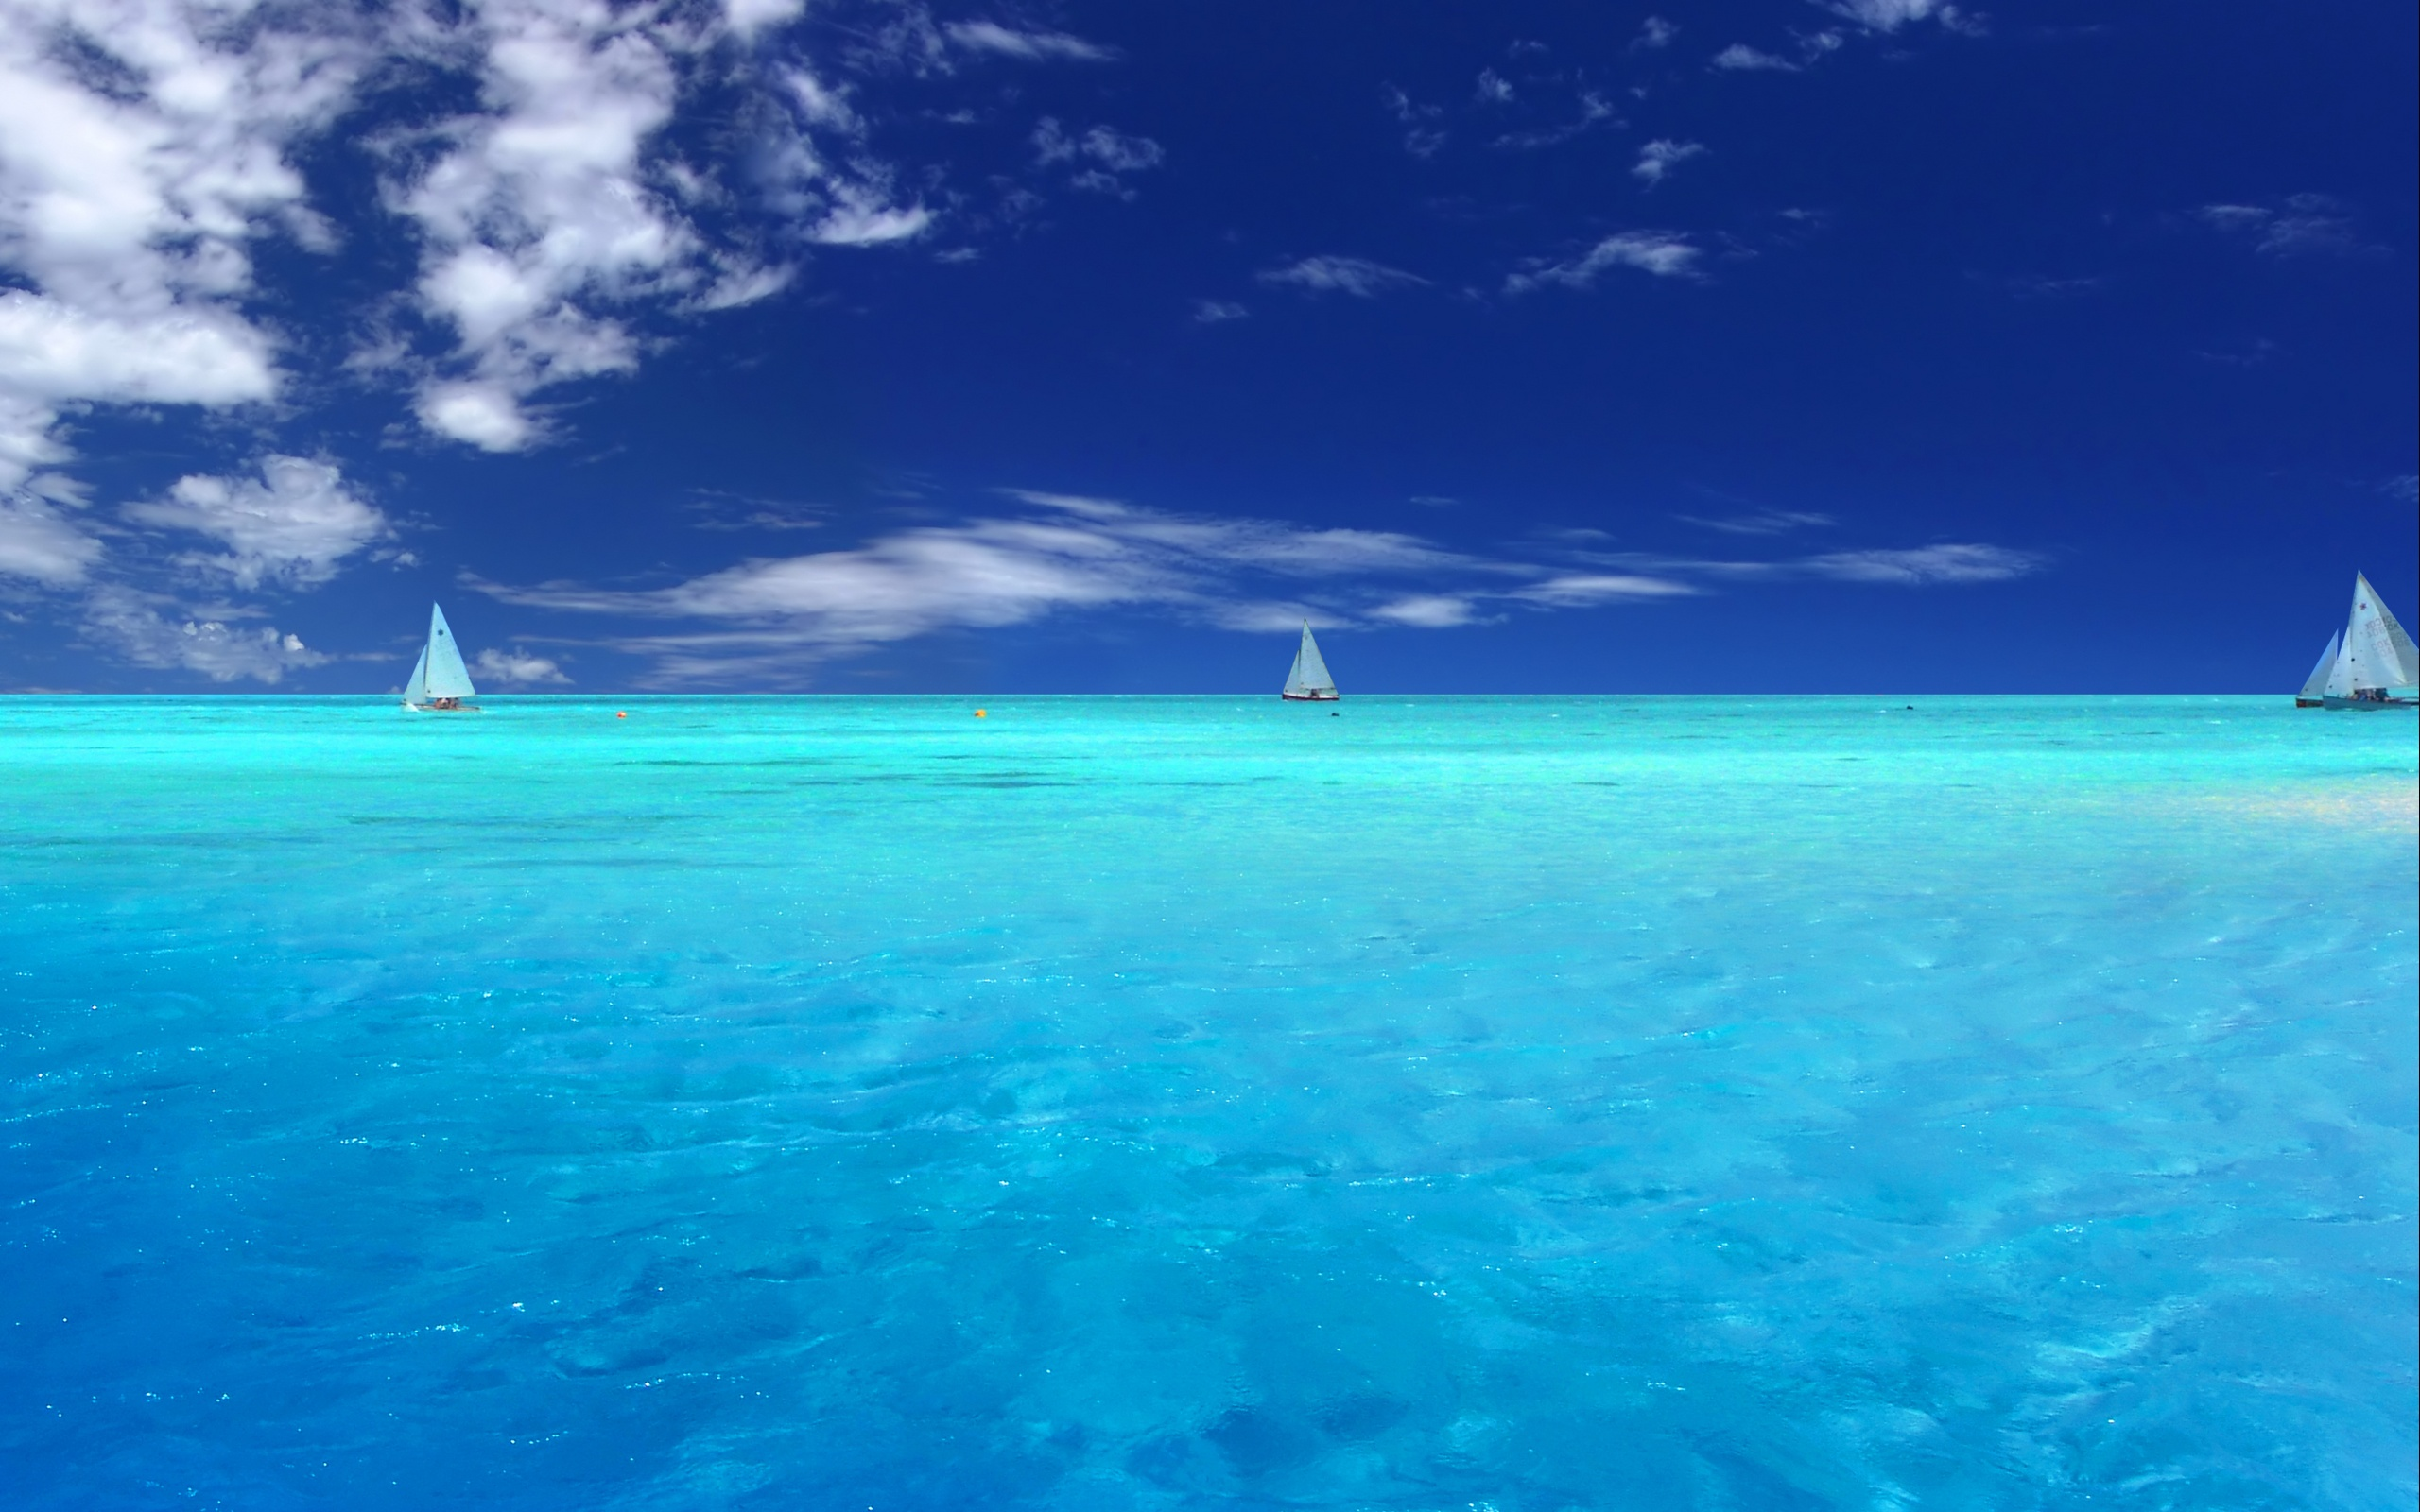 2560x1600 Blue Paradise desktop PC and Mac wallpaper 2560x1600